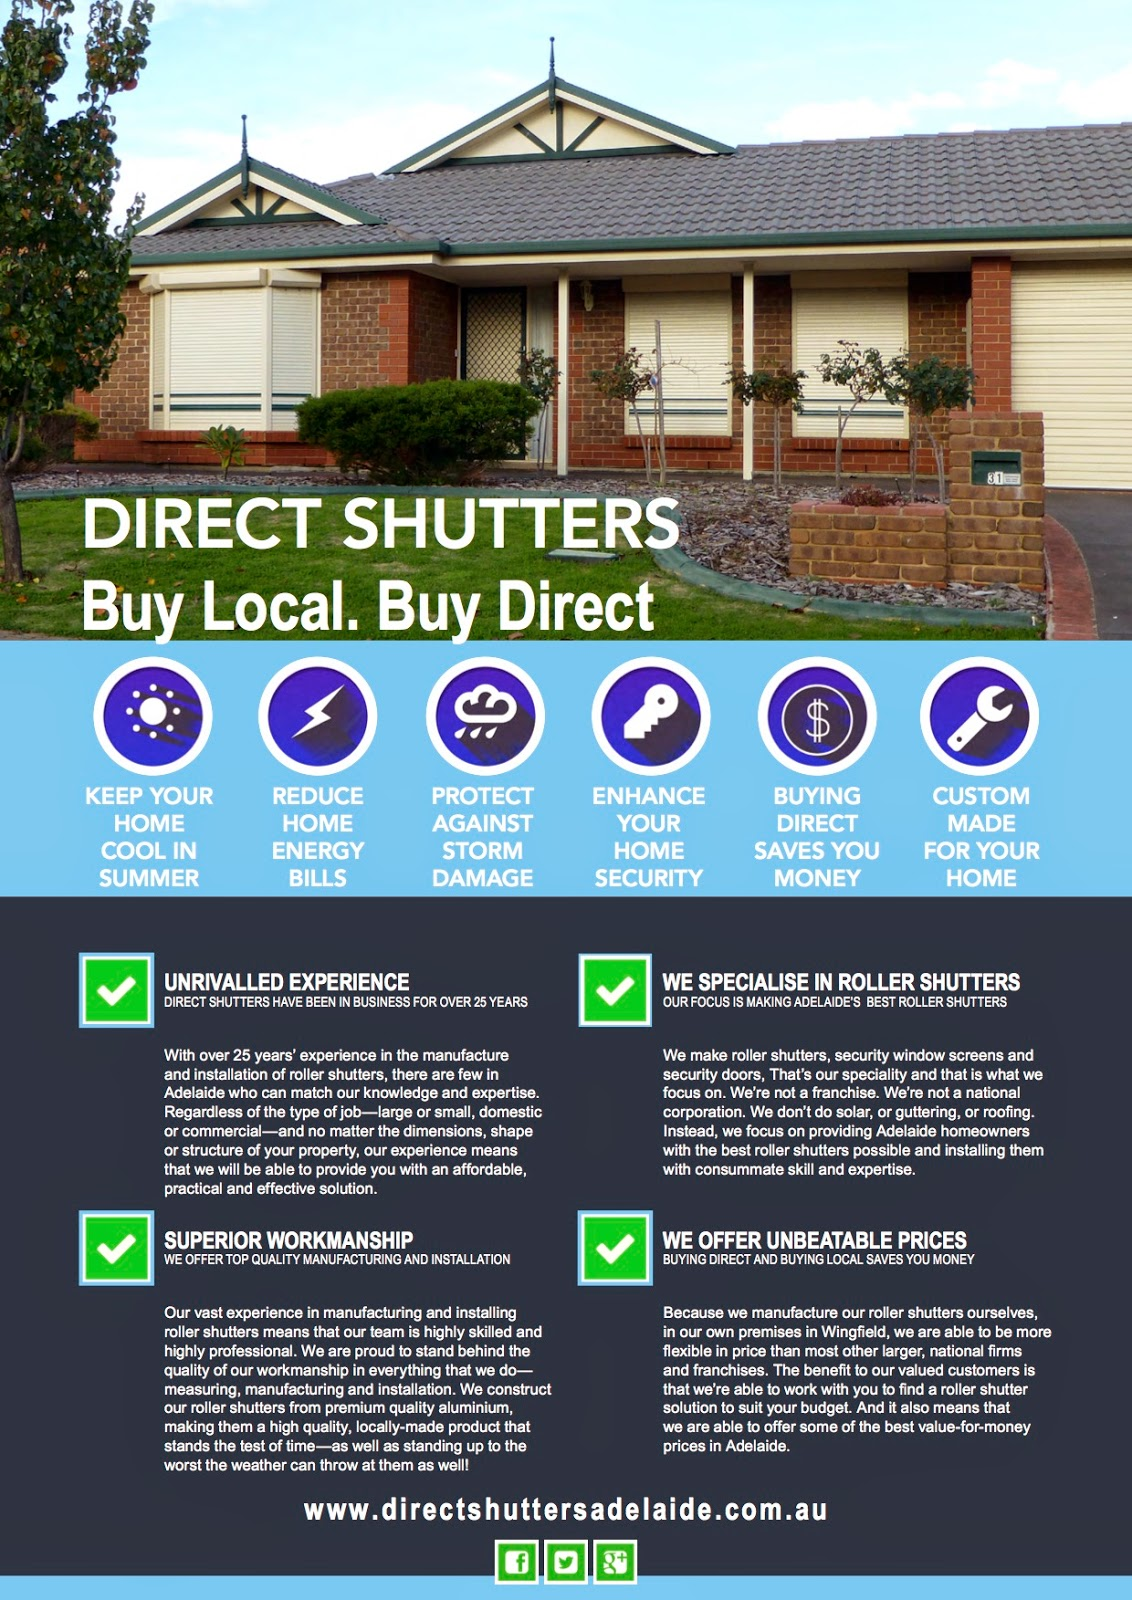 Direct Shutters offer great discount roller shutters made locally in Adelaide